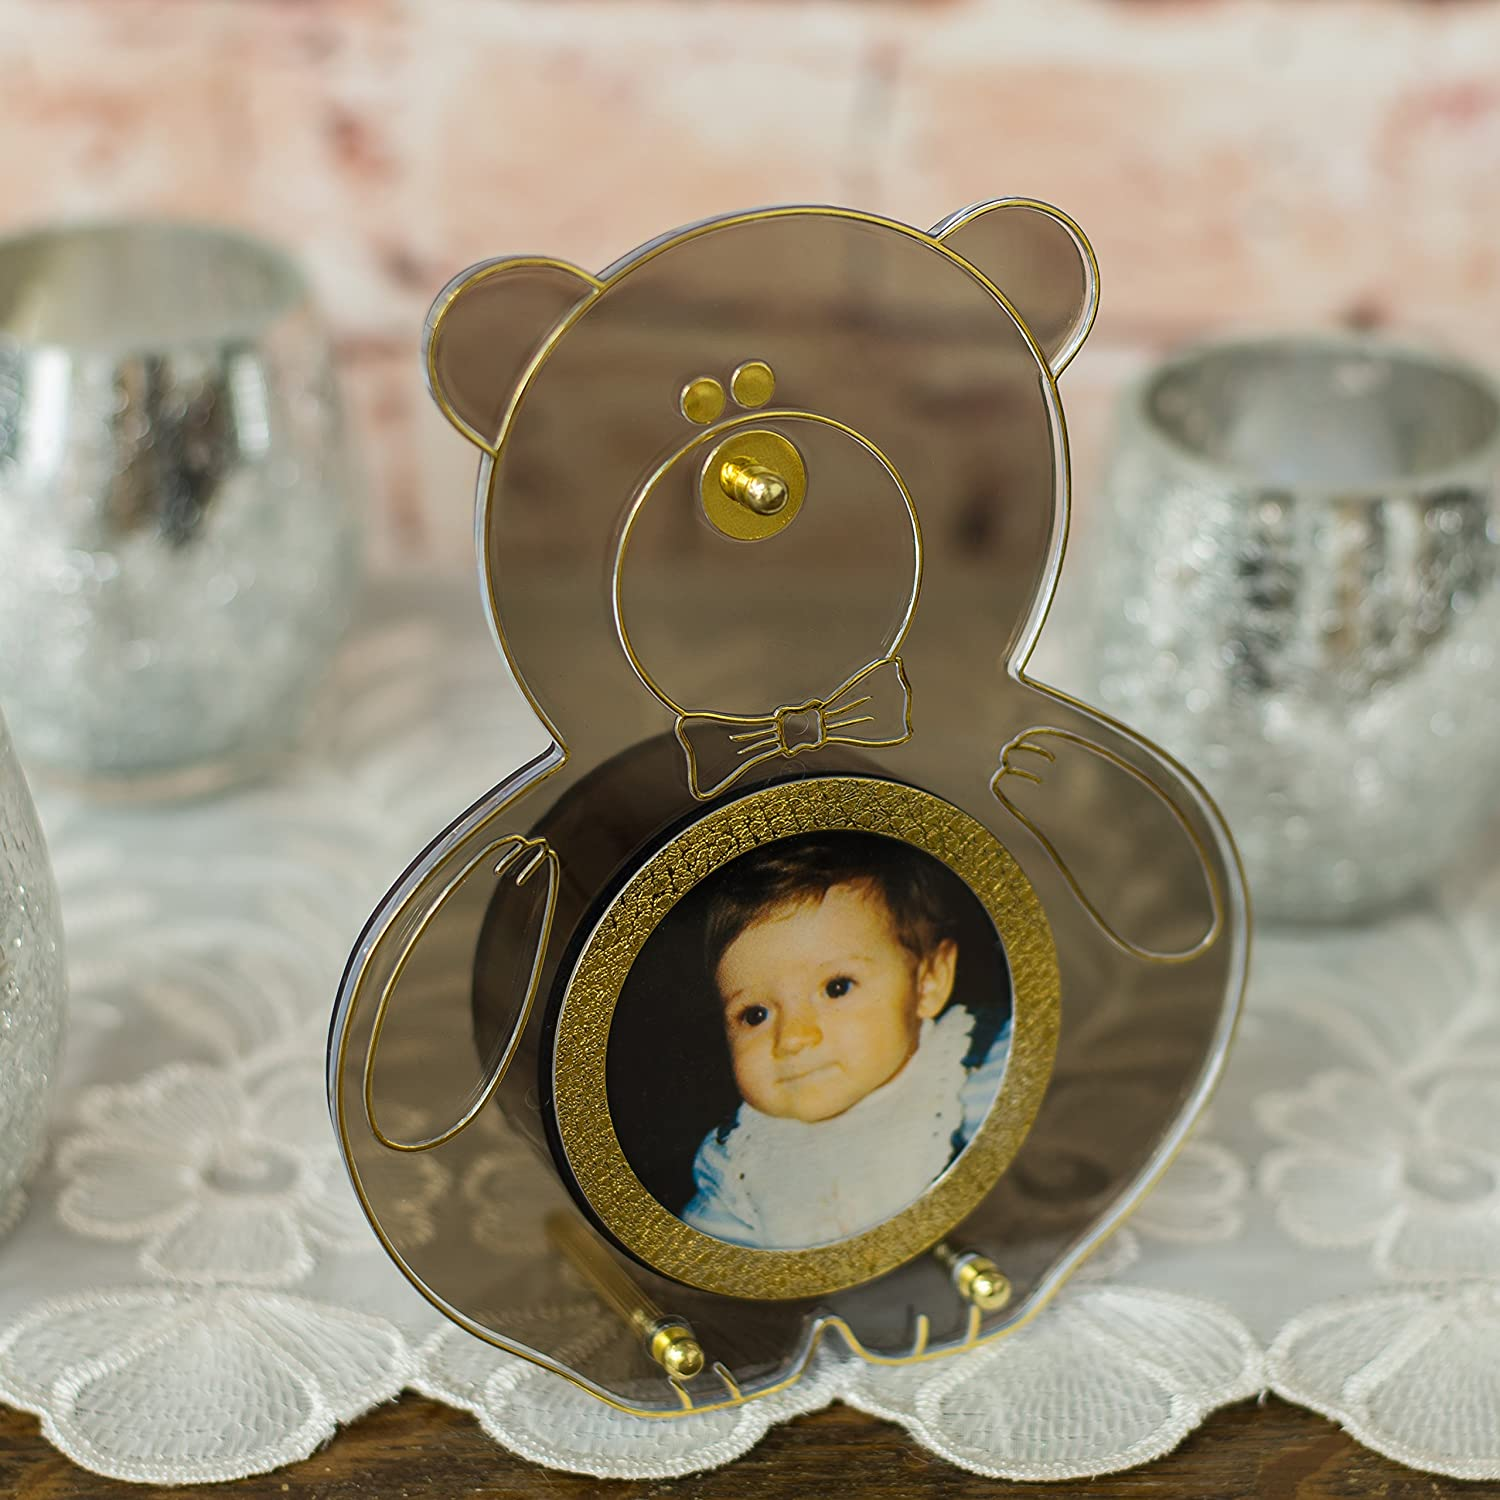 Panda Bear Shaped Gold Tone Brass Musical Photo Frame Plays Its A Small World